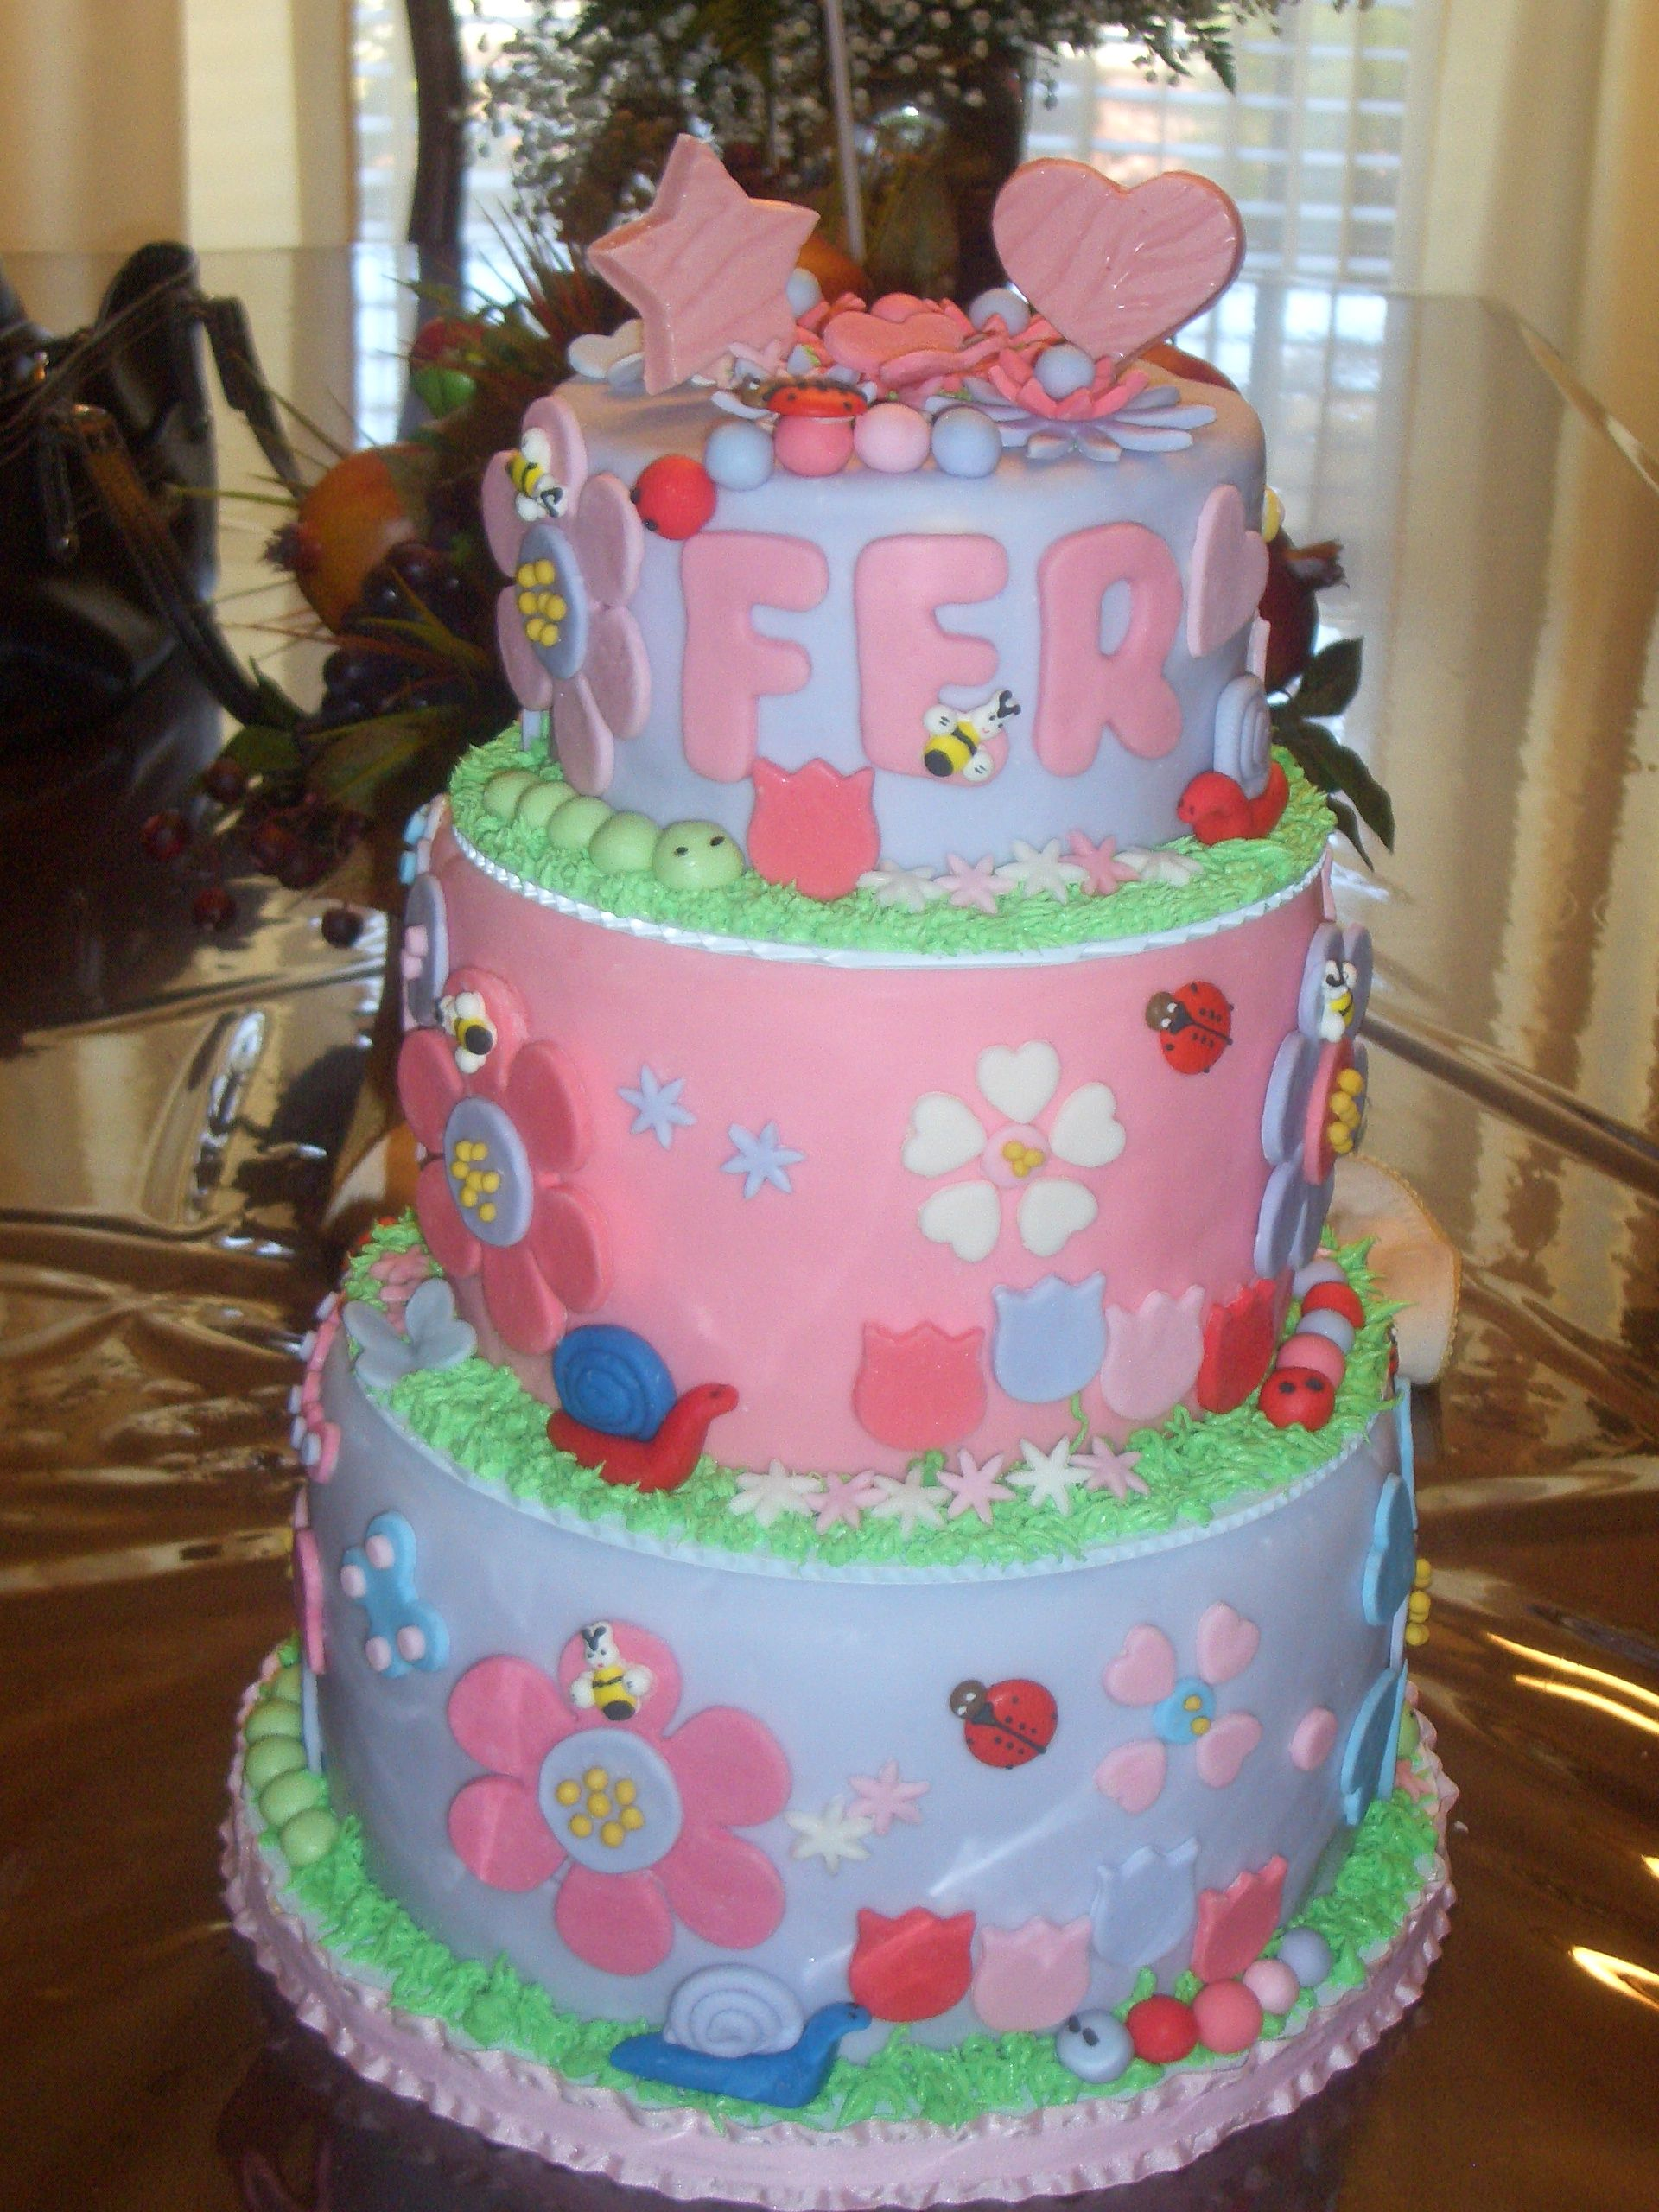 A Three Tier Birthday Cake For A Little Girl